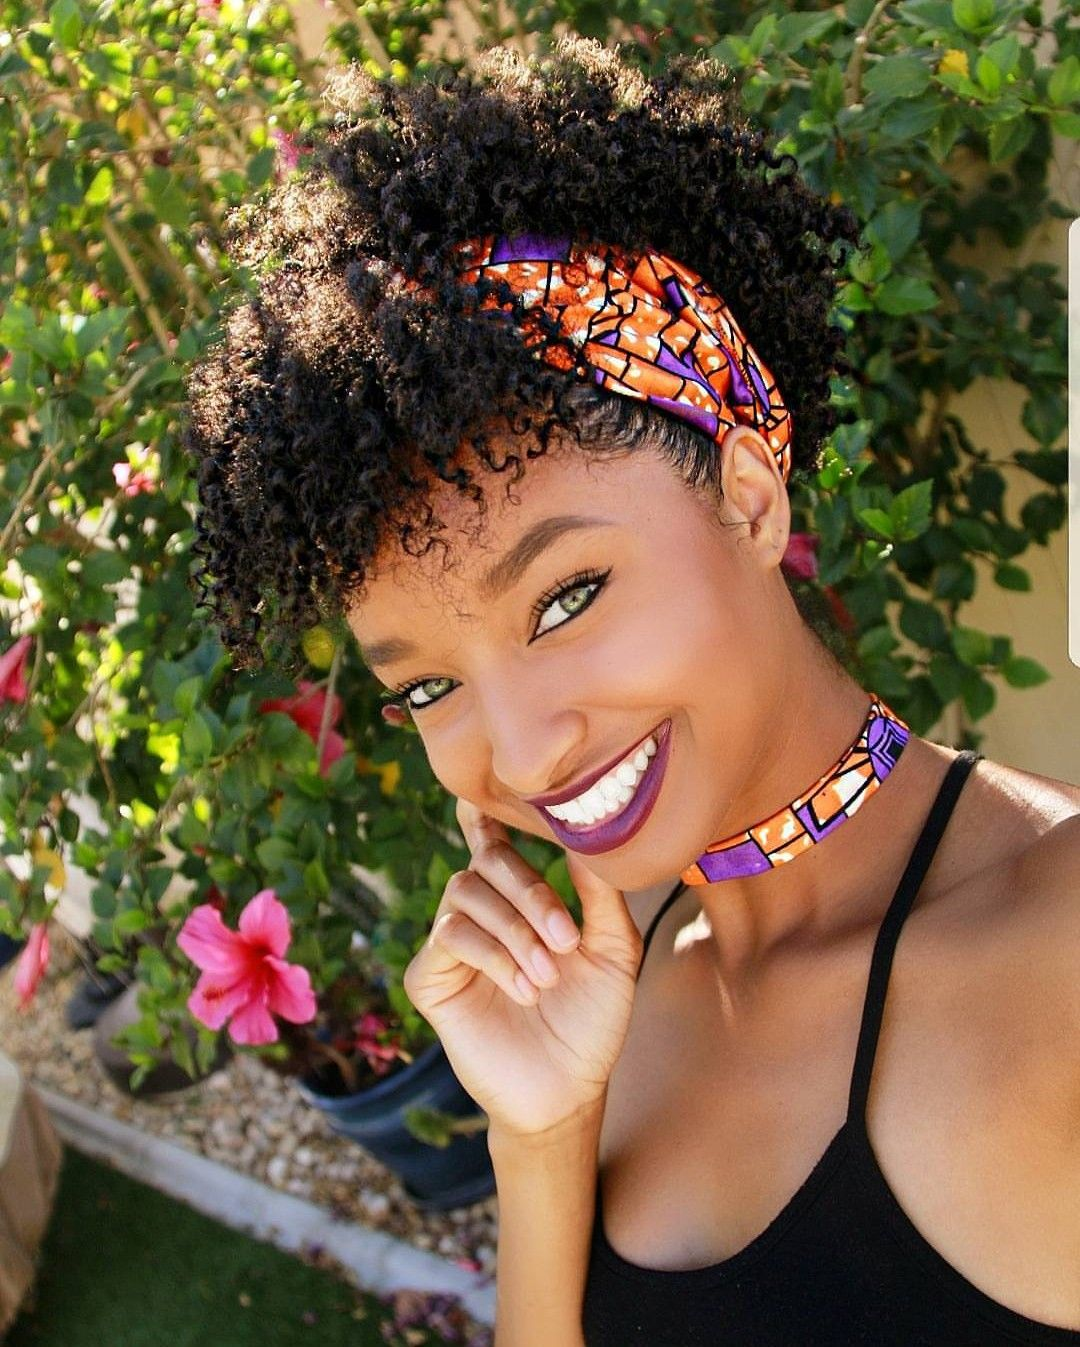 Pin By Eliana Antun On Beauty Short Natural Hair Styles Scarf Hairstyles Headband Hairstyles